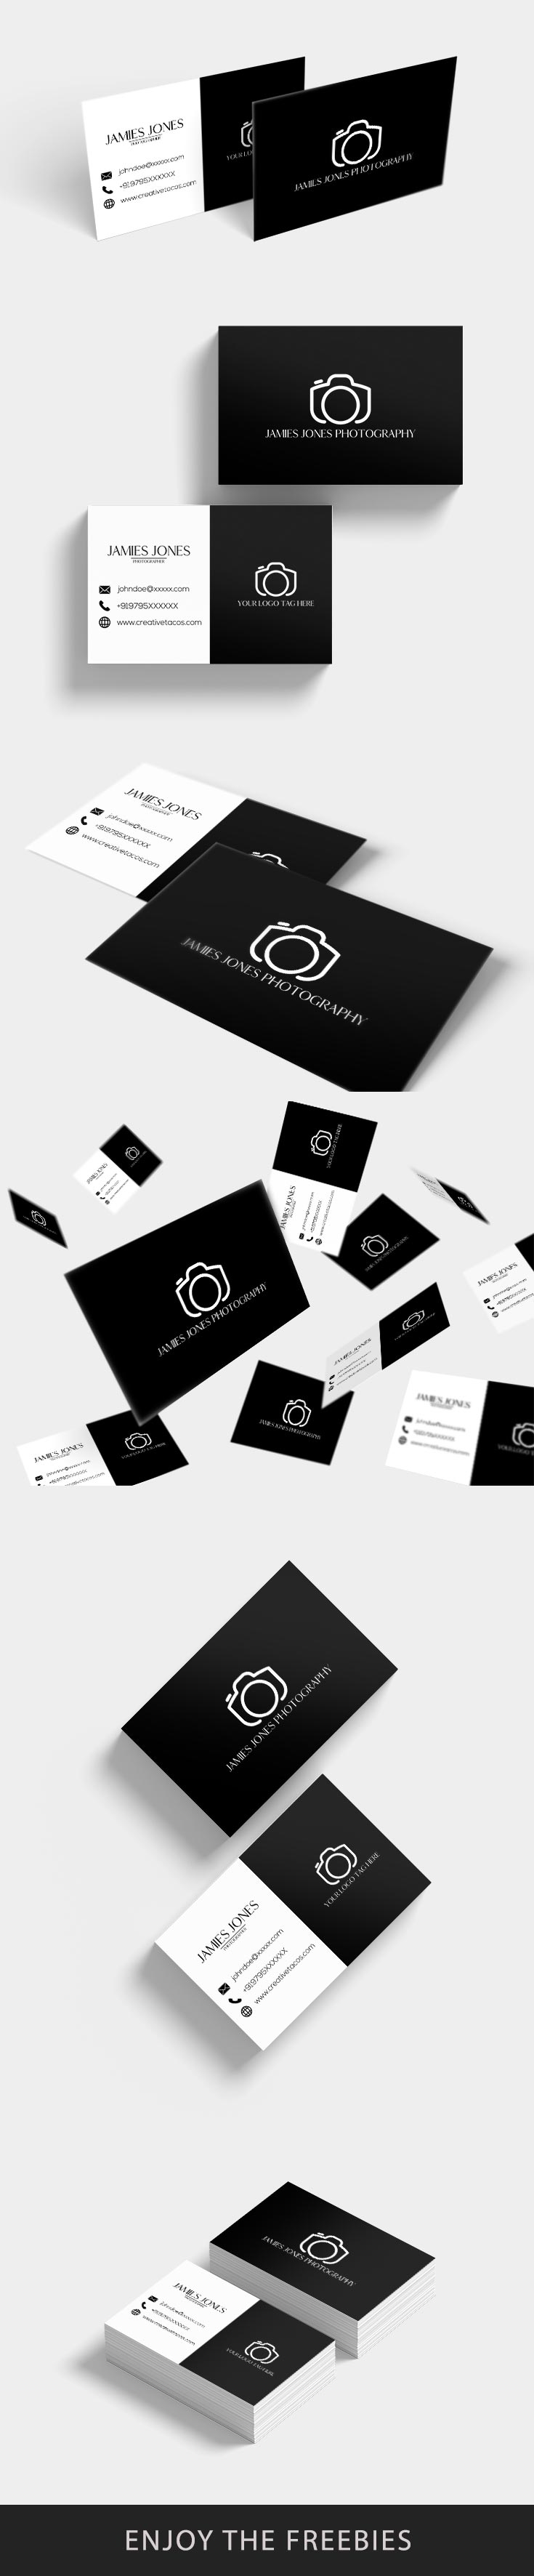 Free Minimal Business Card Ver. 2